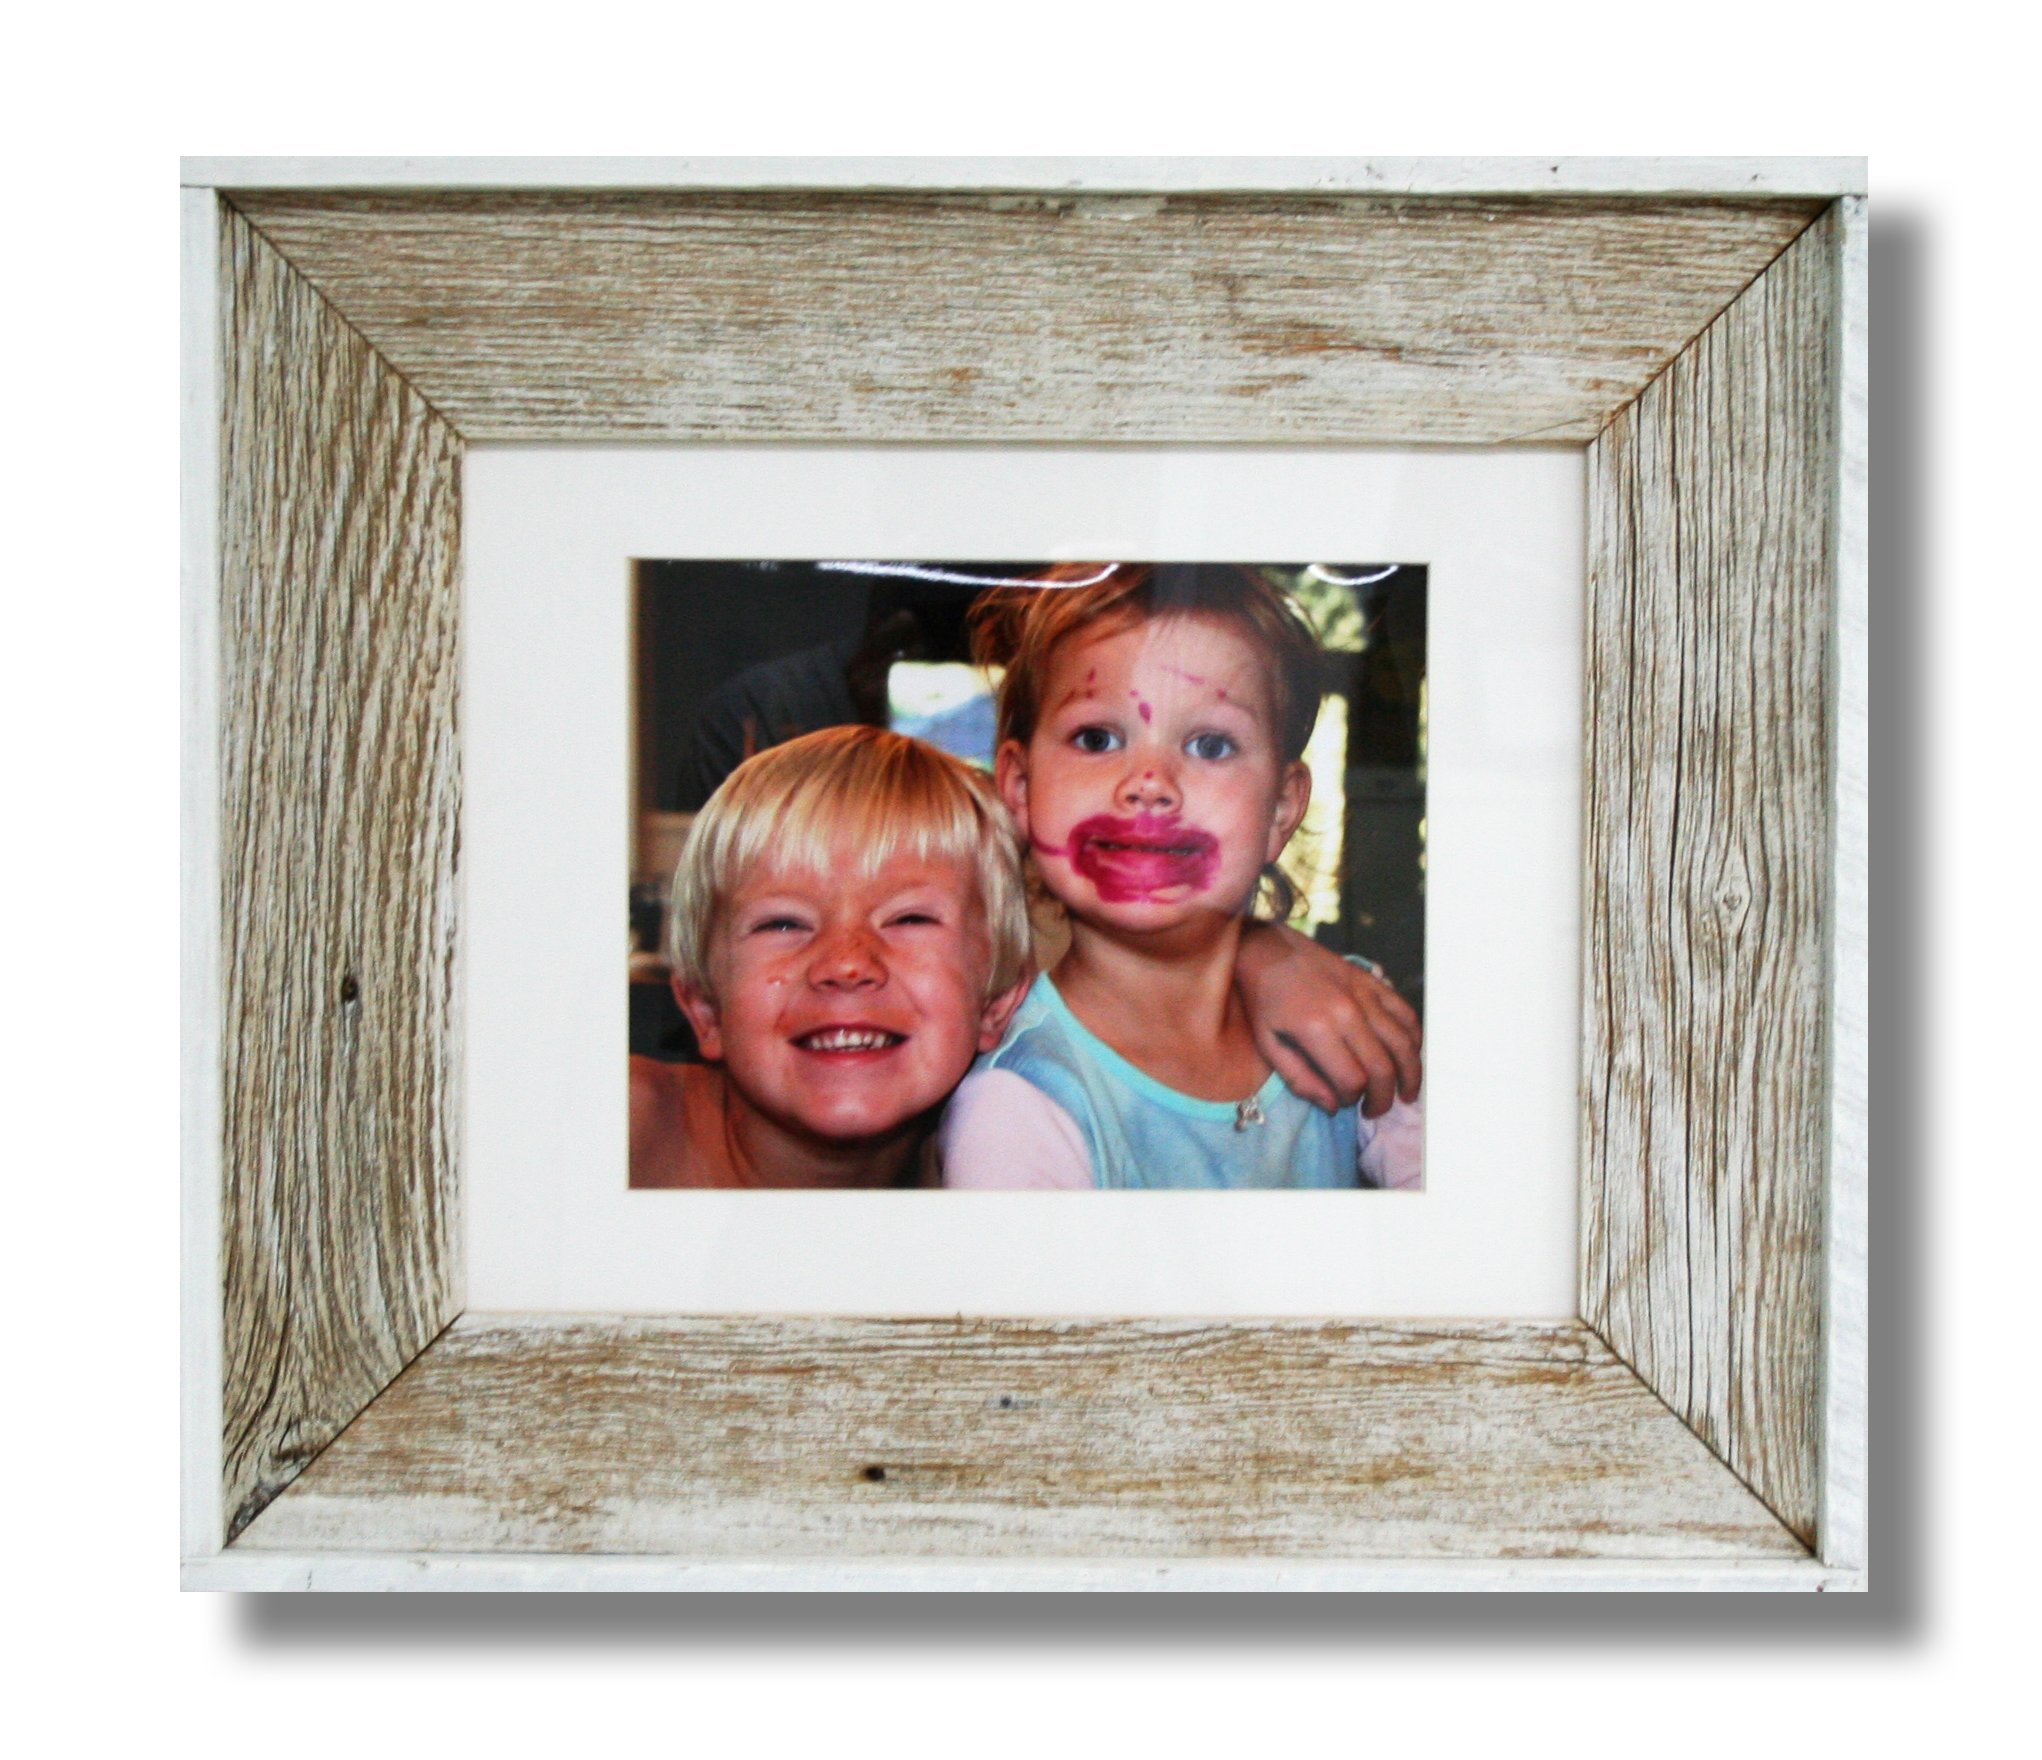 Beach Frames Reclaimed Wood Designer Frame Holds on 8'' x 10'' Photo with White matting or 11'' x 14'' unmatted Photo, 17.5'' x 20.5'', White